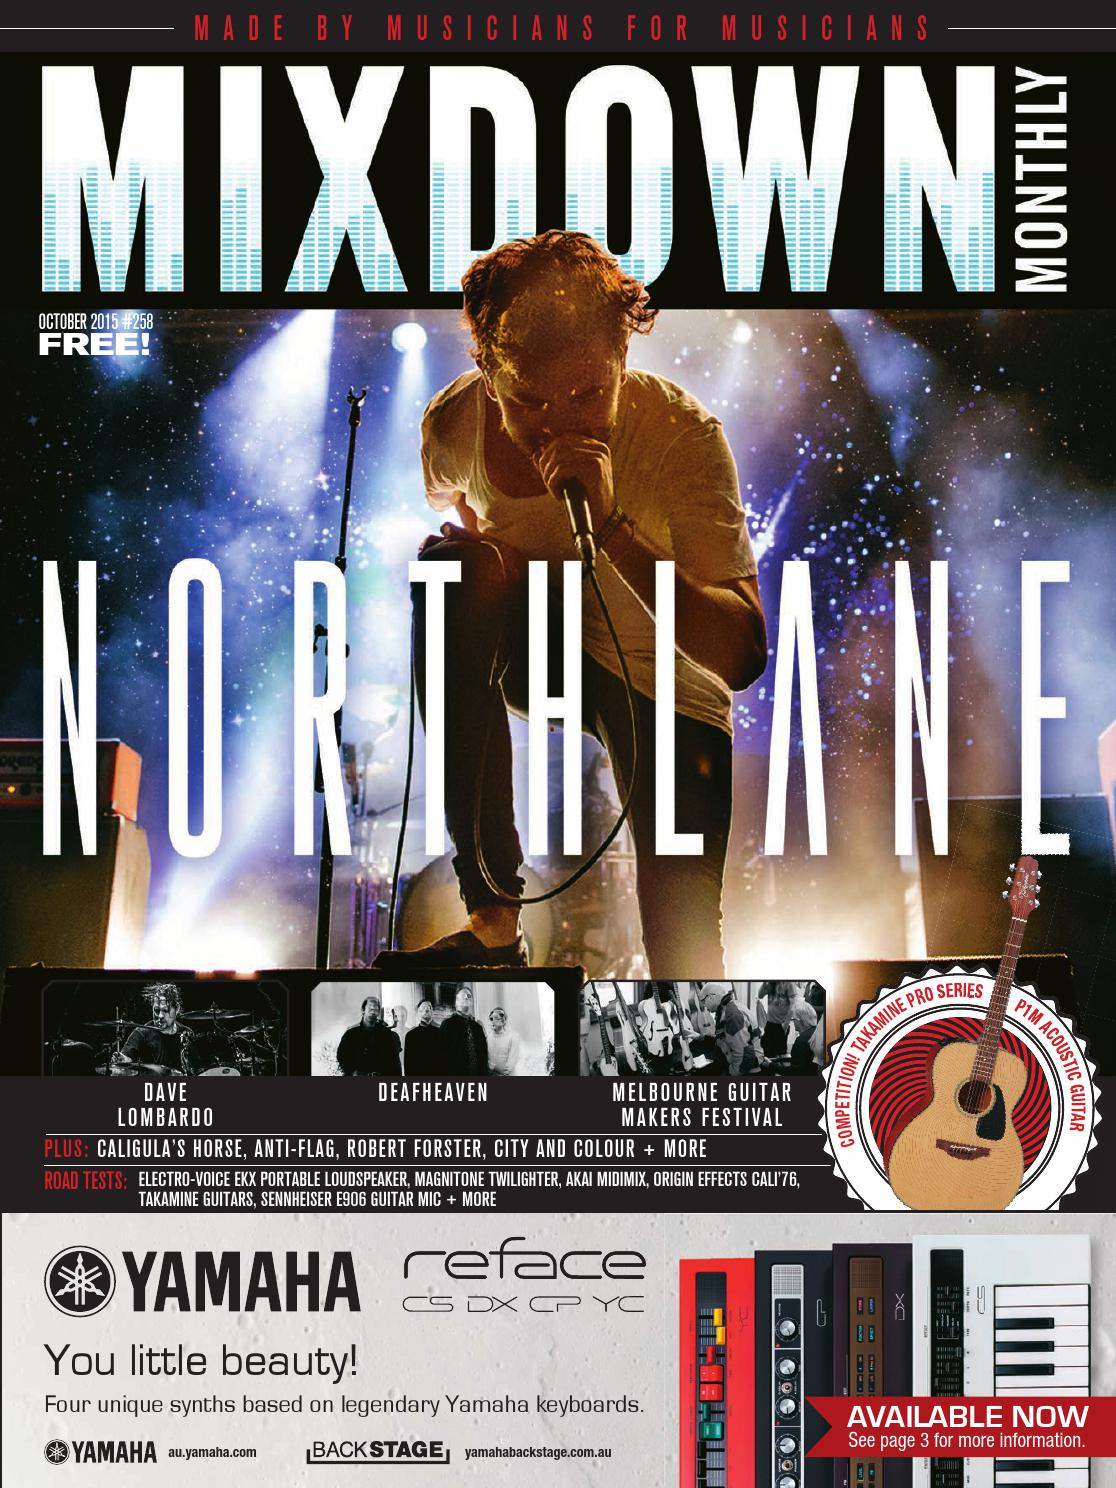 Mixdown Magazine October 2015